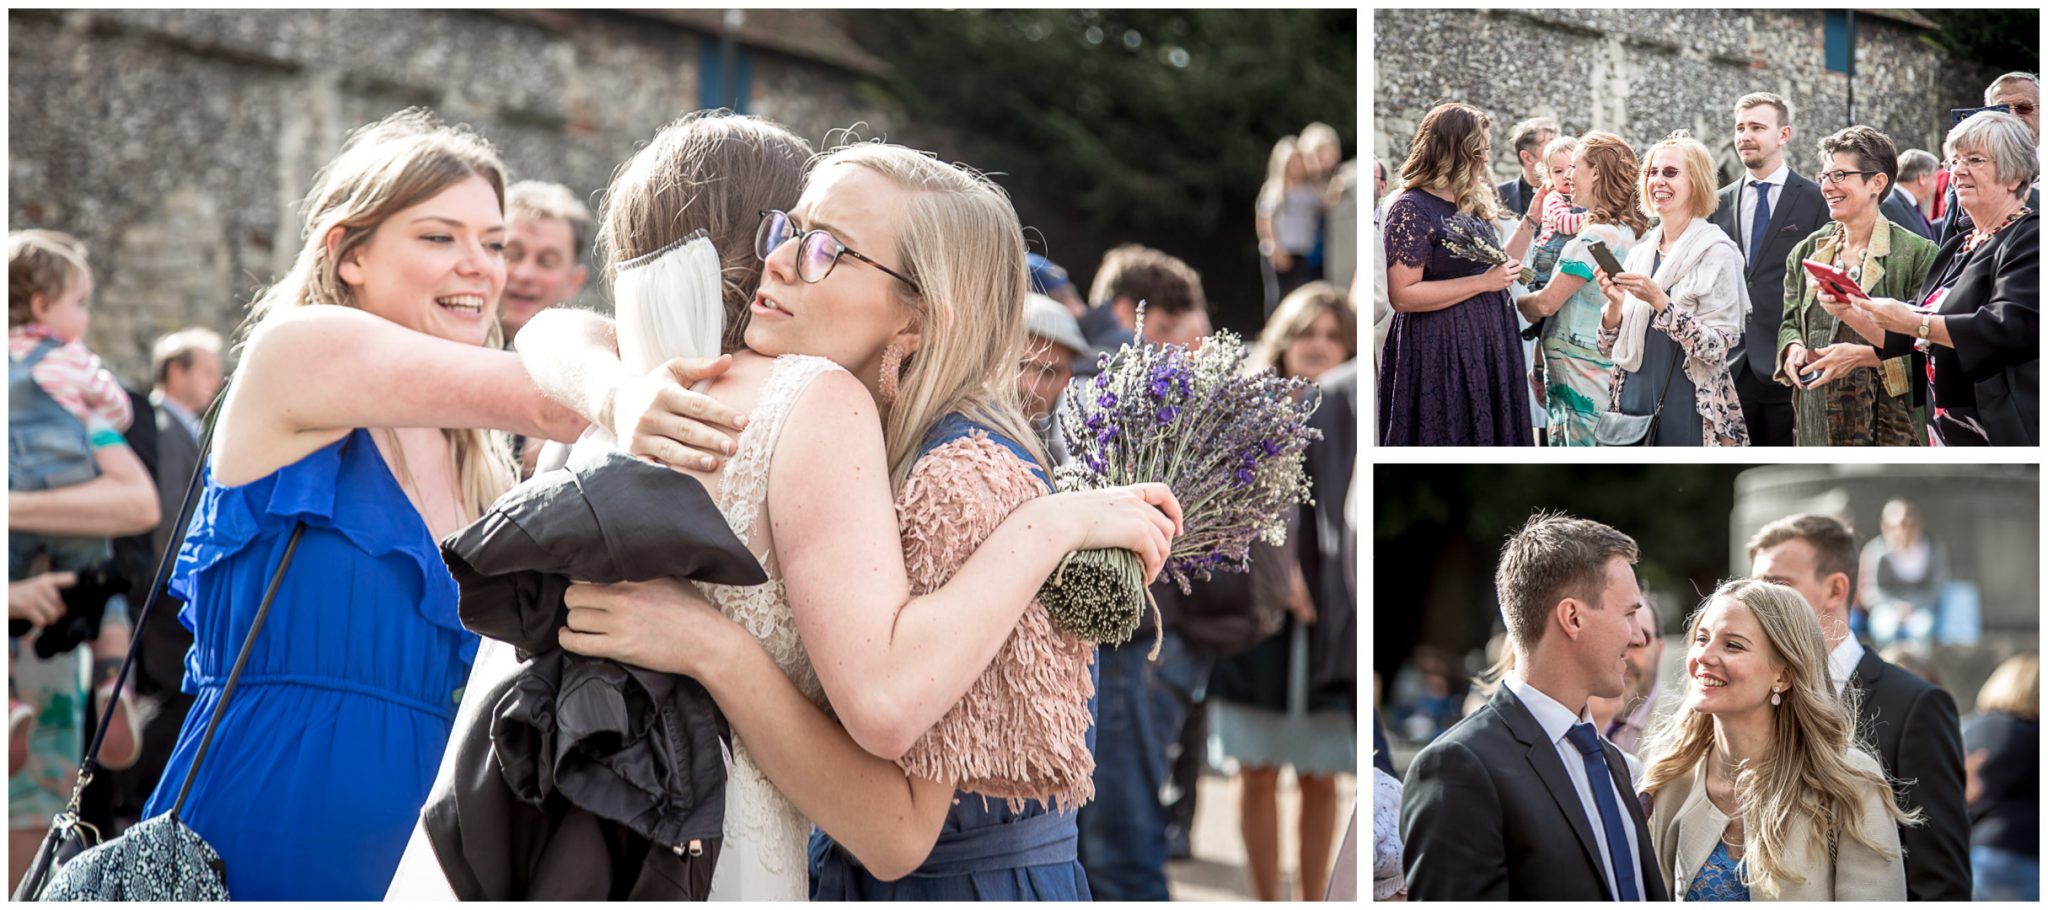 winchester cathedral wedding photography hugs and kisses for bride and groom